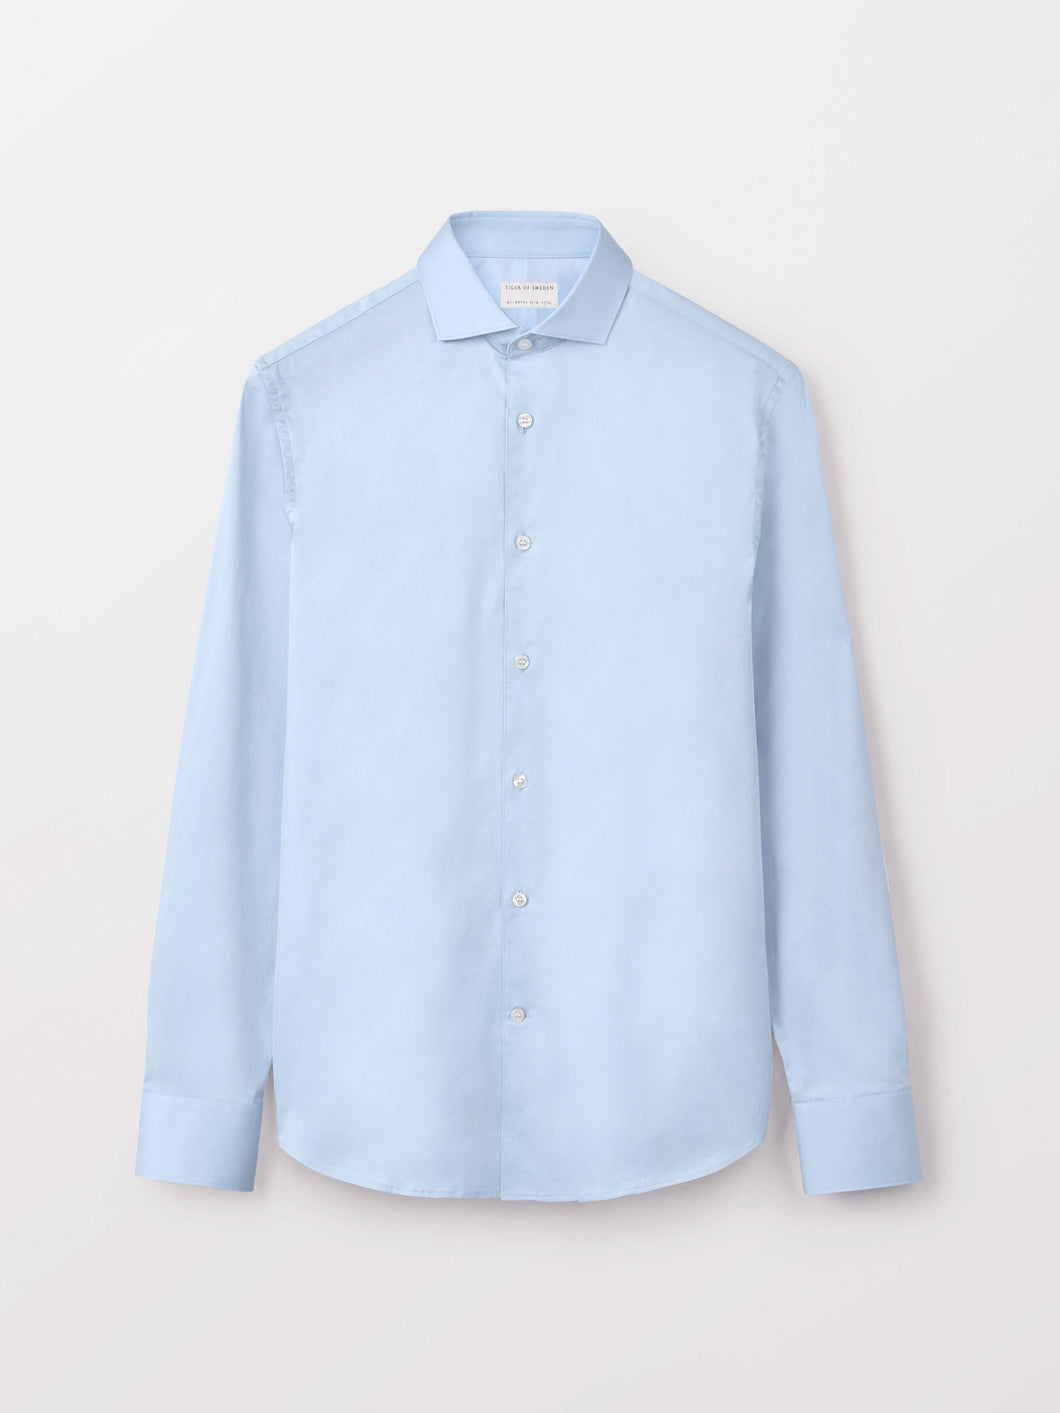 TIGER OF SWEDEN Farrell 5 Shirt Lightblue